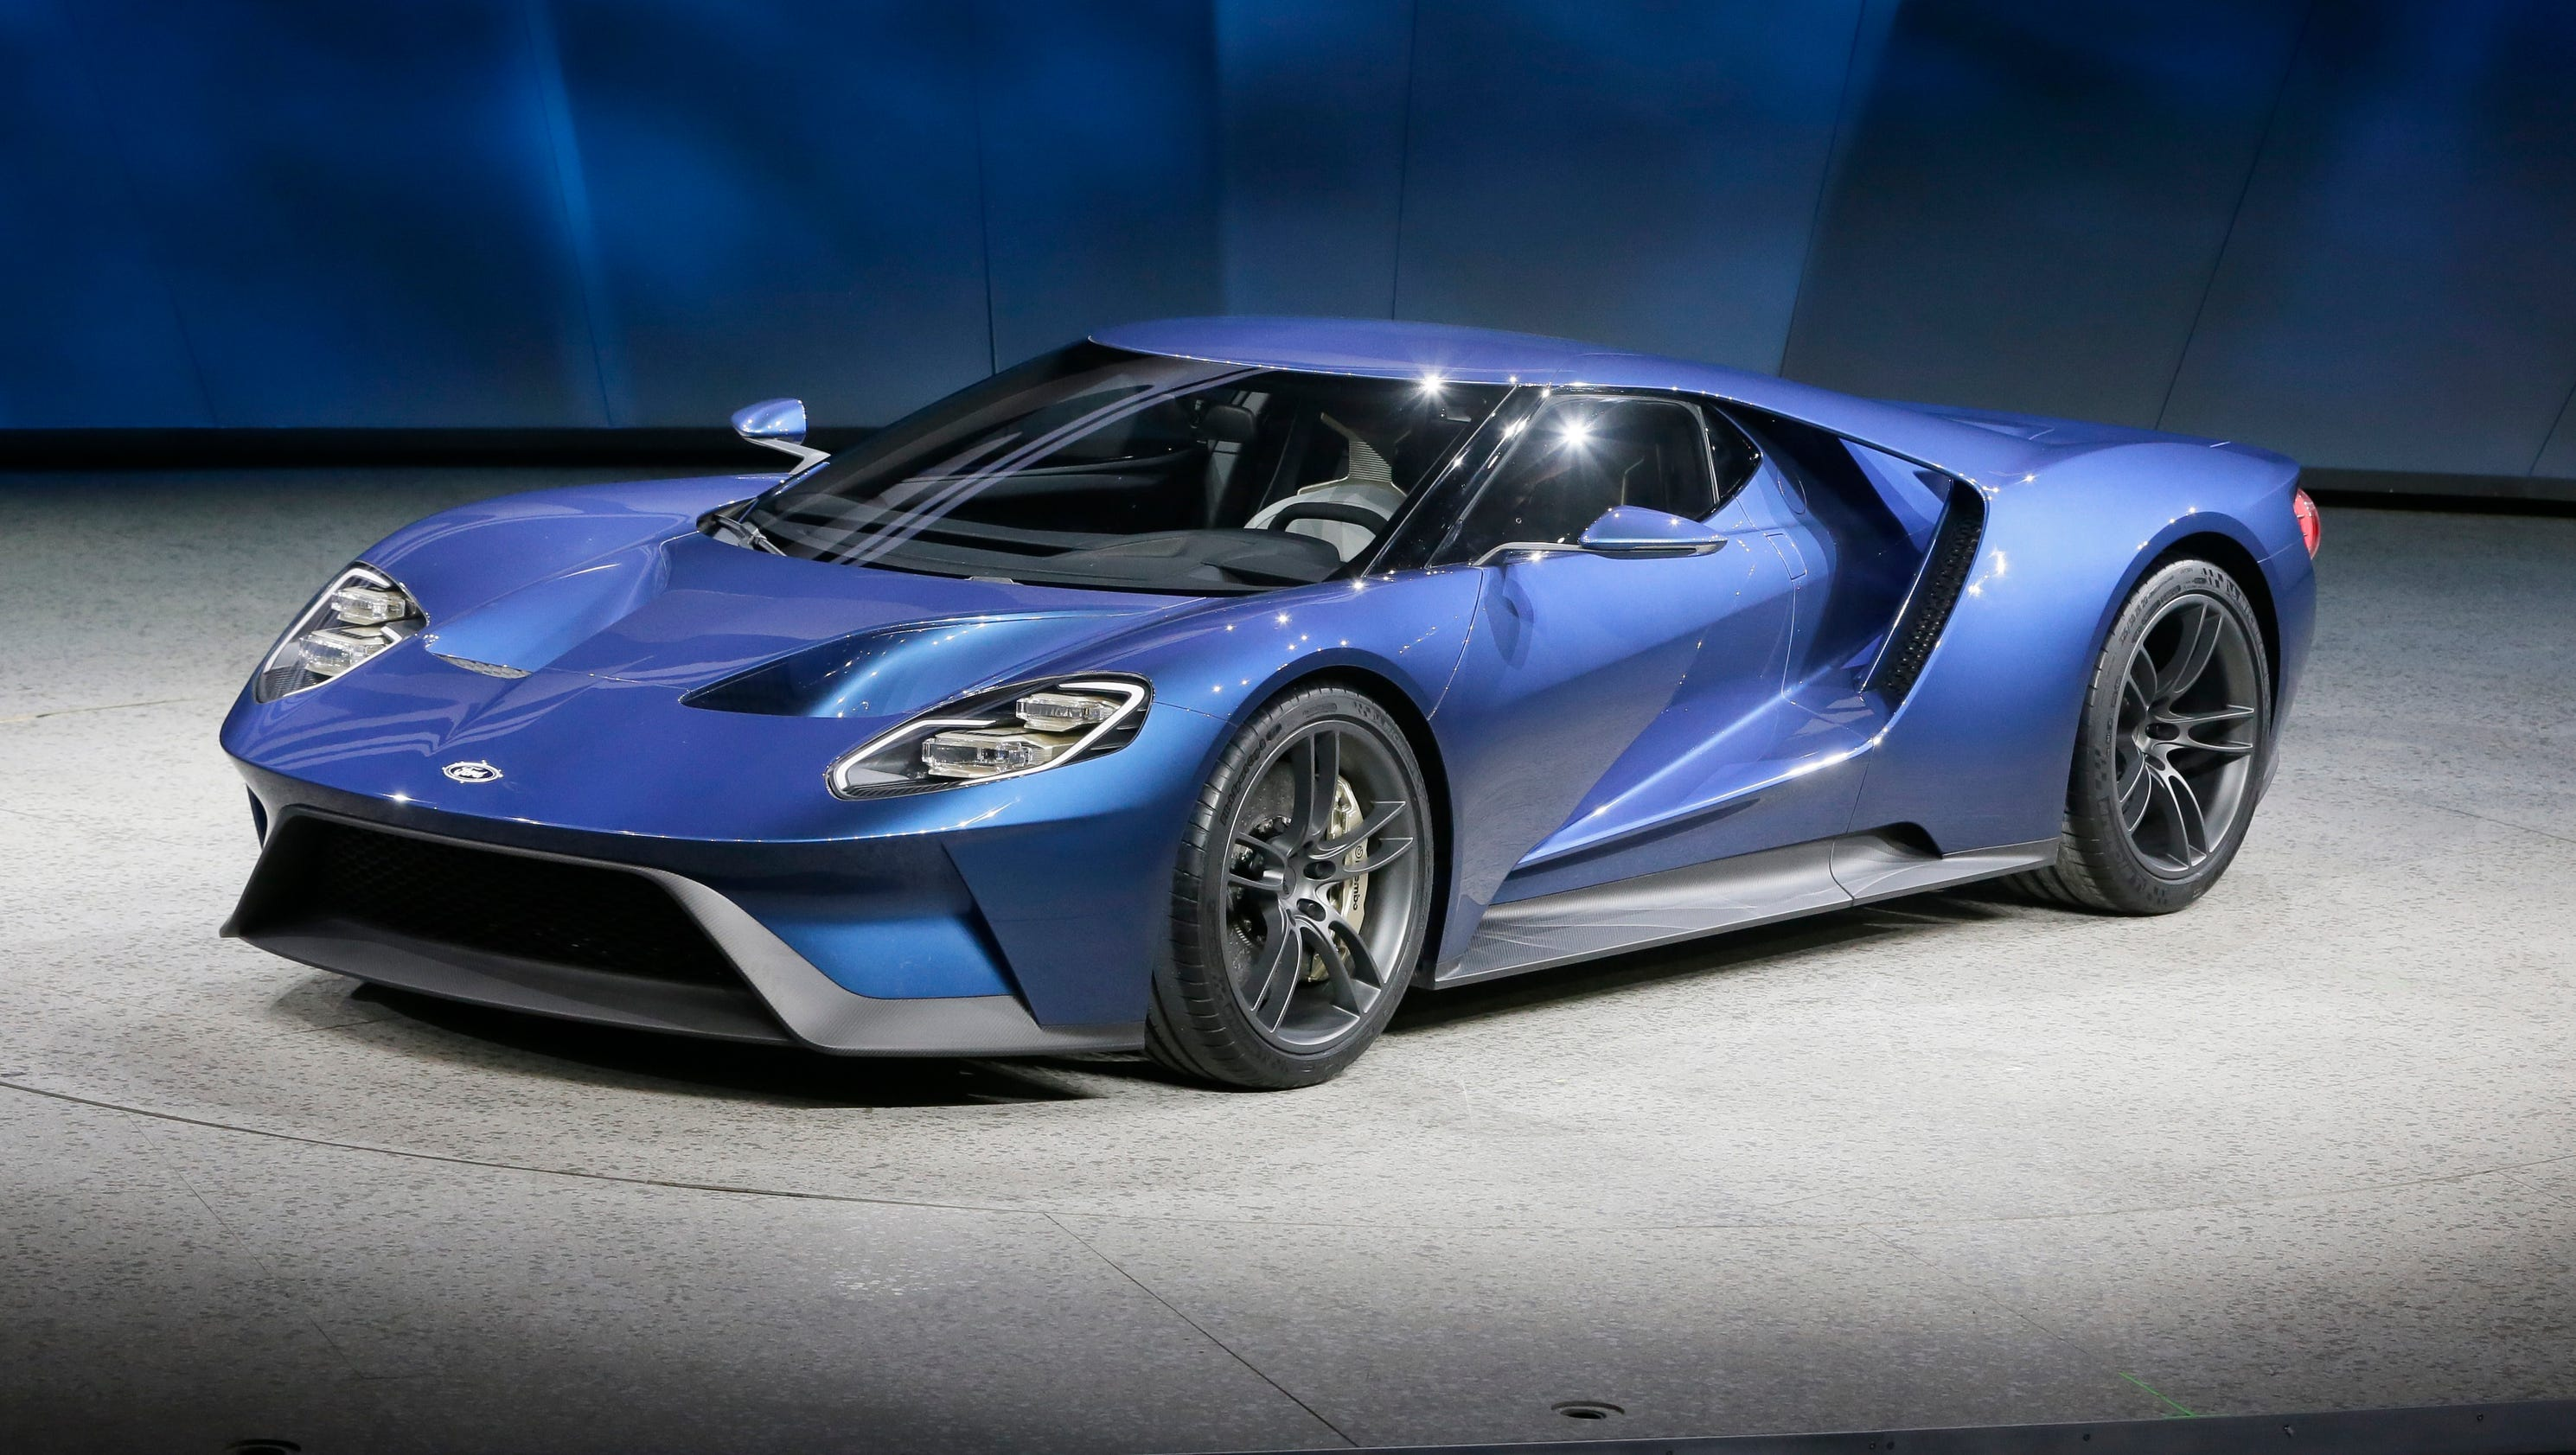 2016 ford gt super car with 24449177 on 02 besides De Tomaso Pantera Gt5 S For Sale Lhd as well South ton City Wallpaper likewise 14 additionally 2003 e2 86 922006 Ford Gt 2.